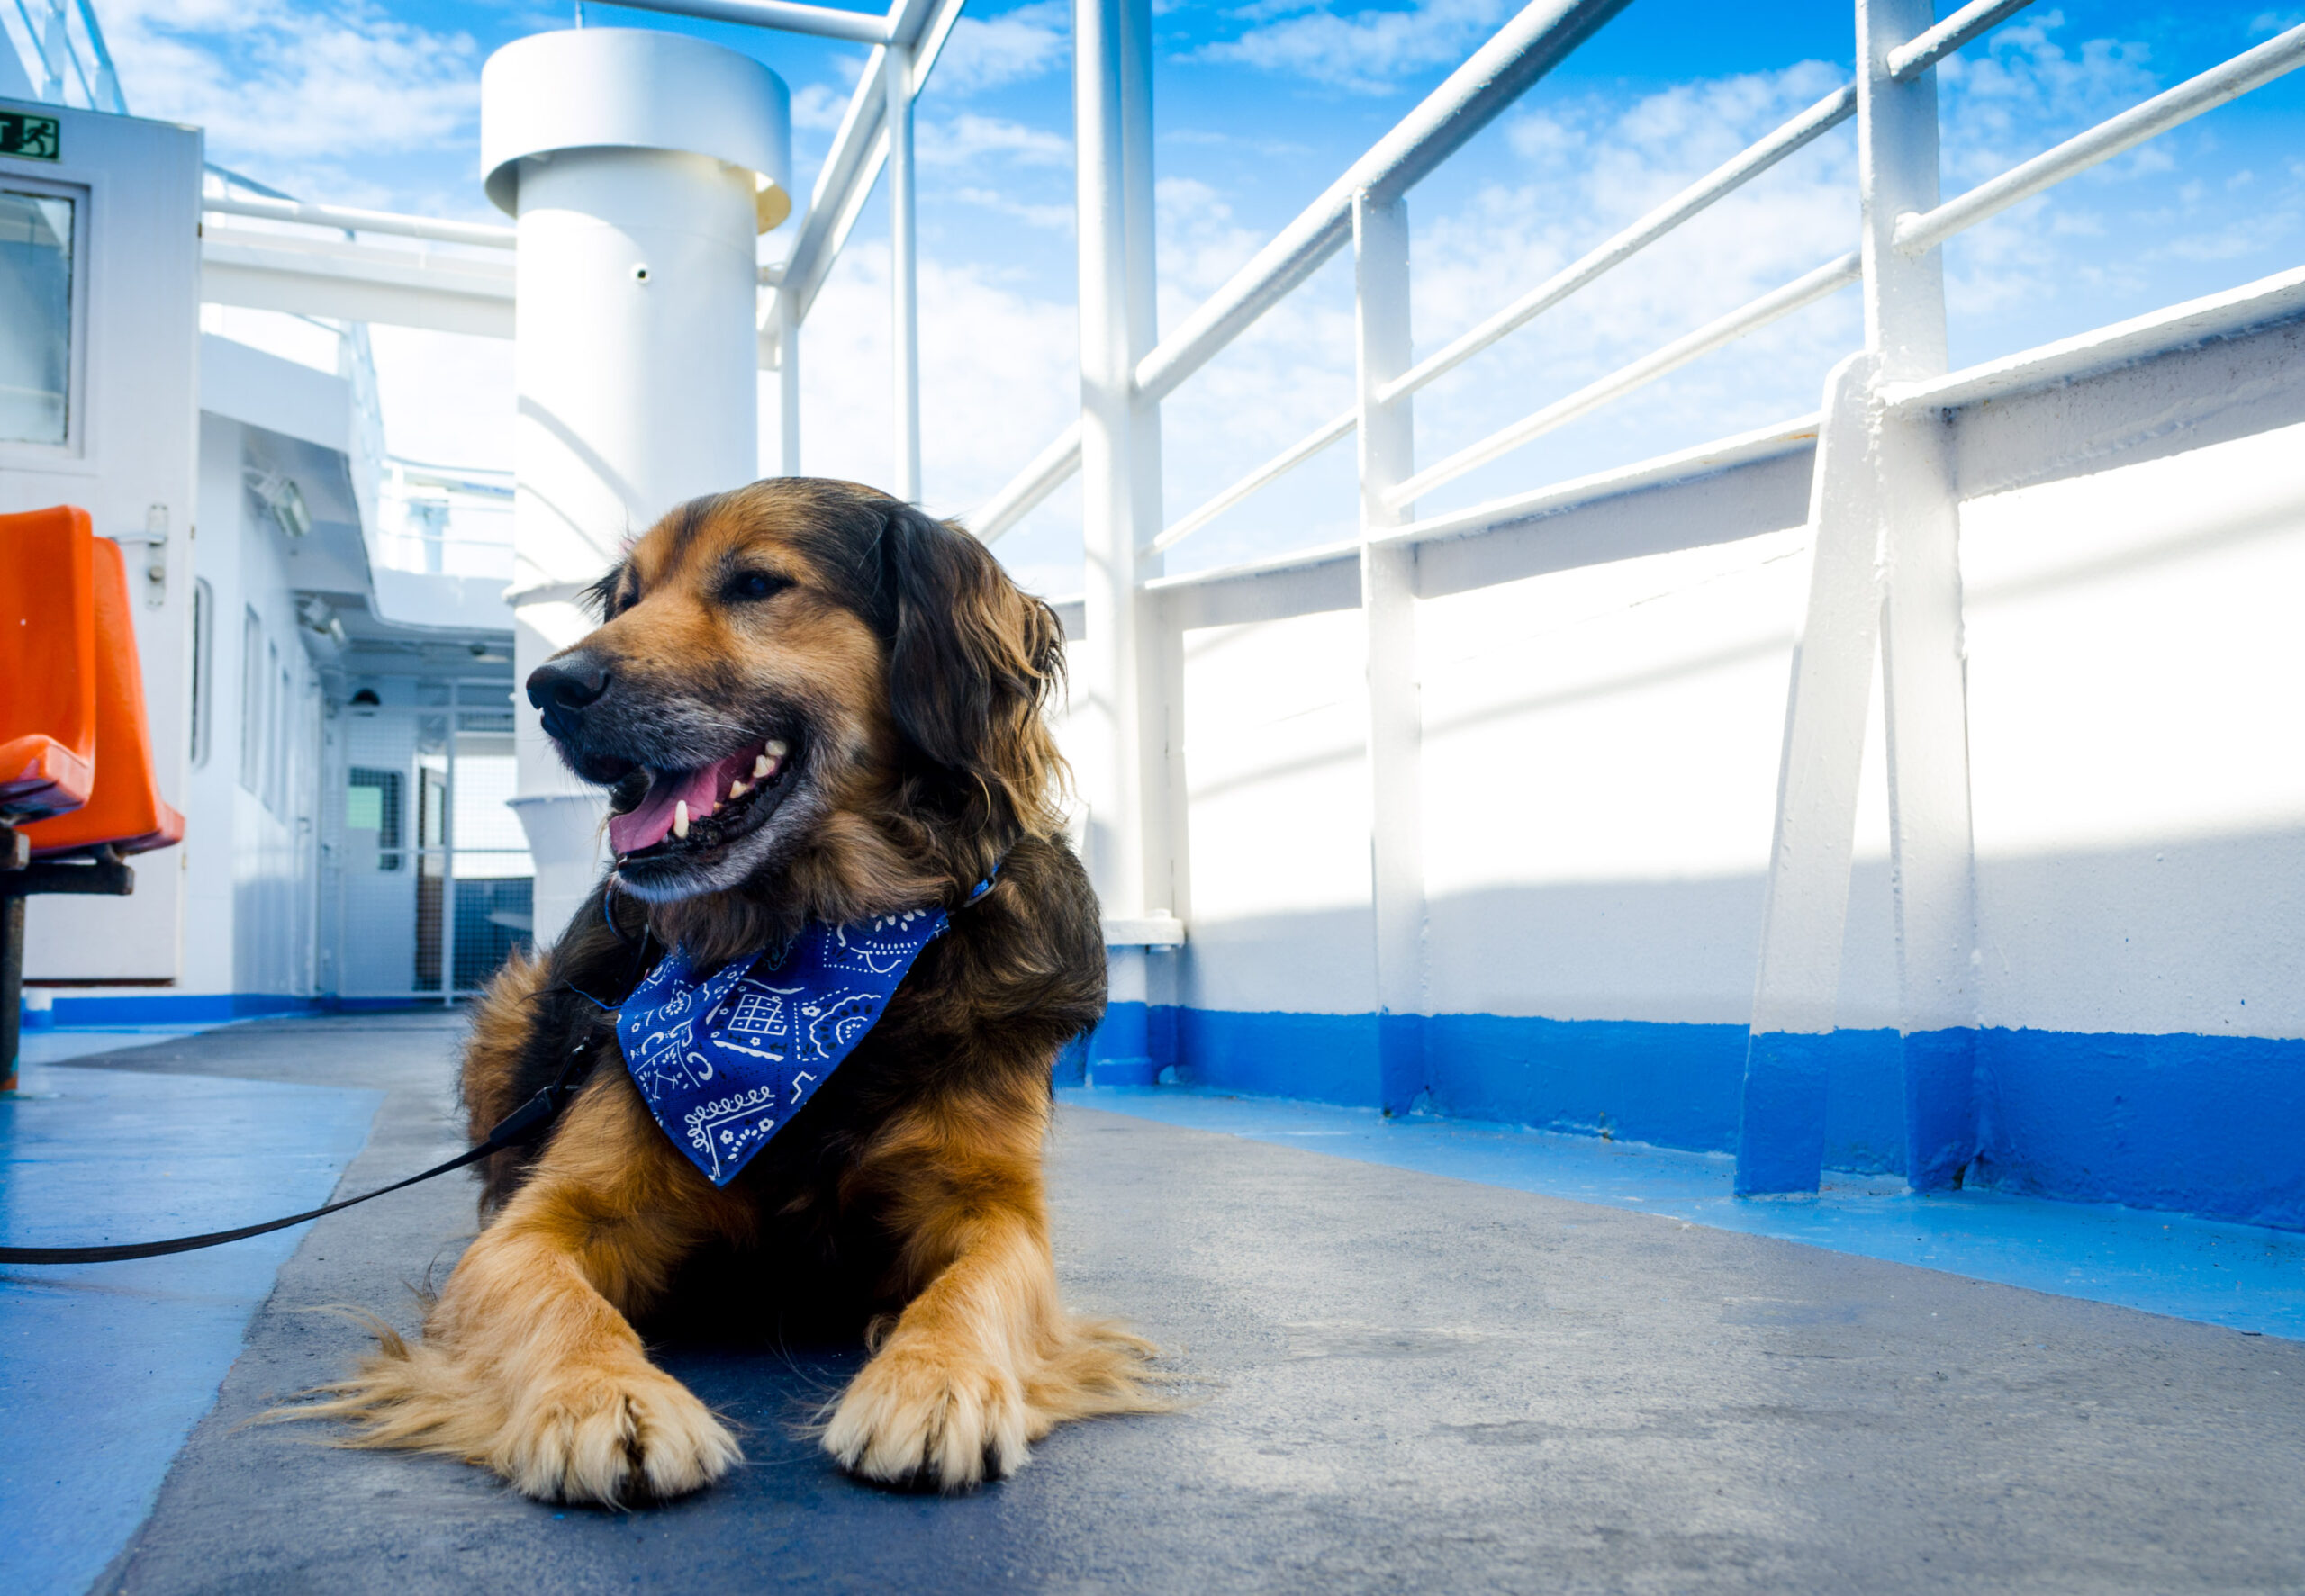 Travelling with a dog – On the ferry.